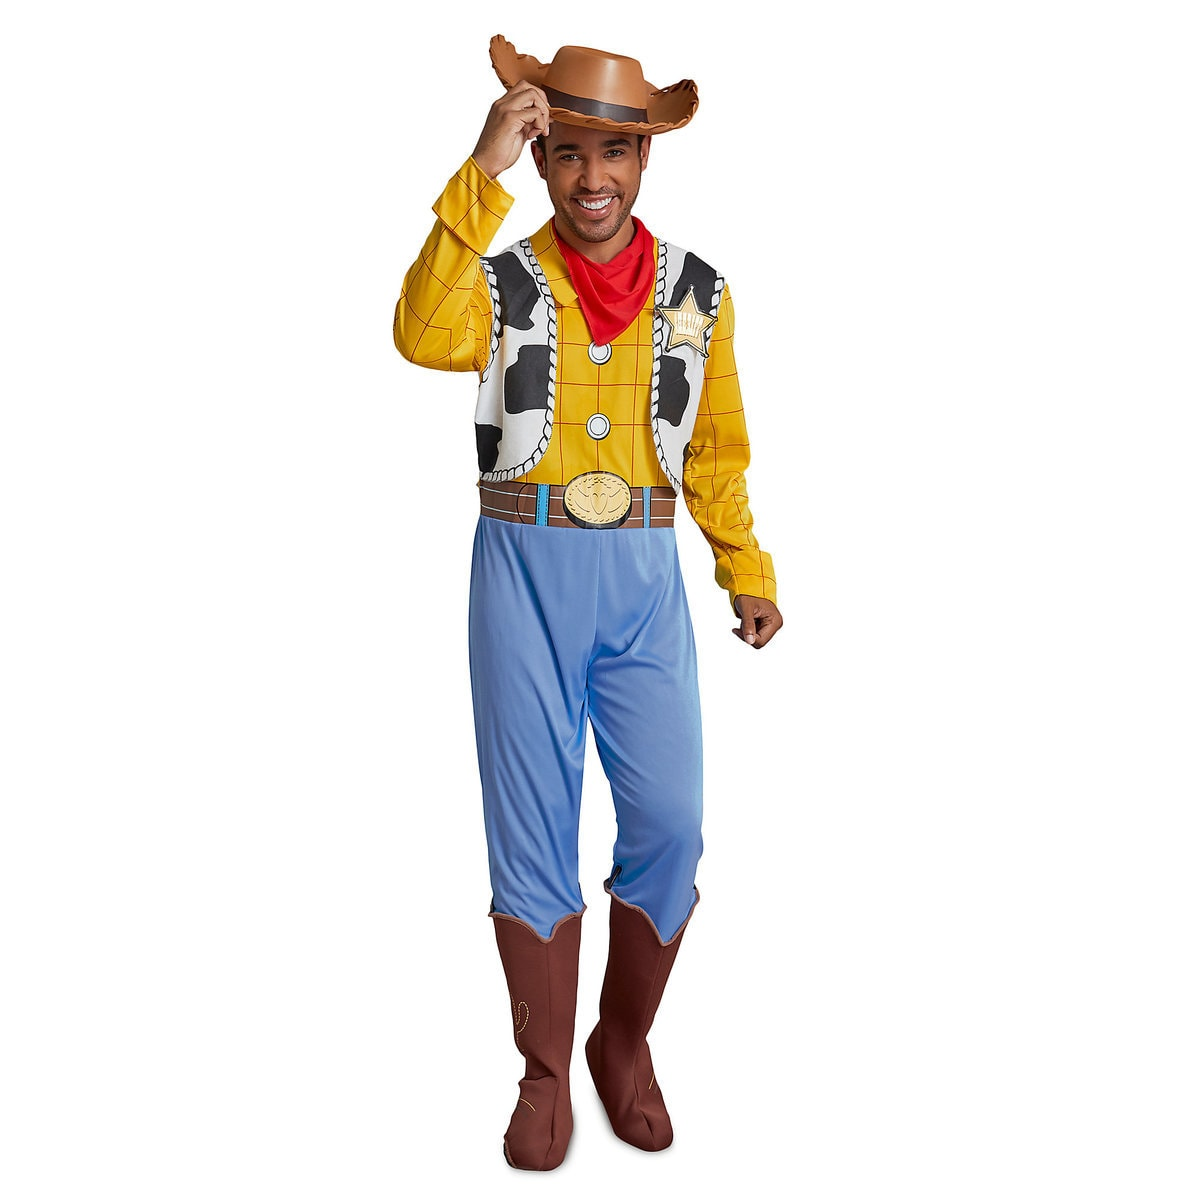 woody deluxe costume for adultsdisguise | shopdisney